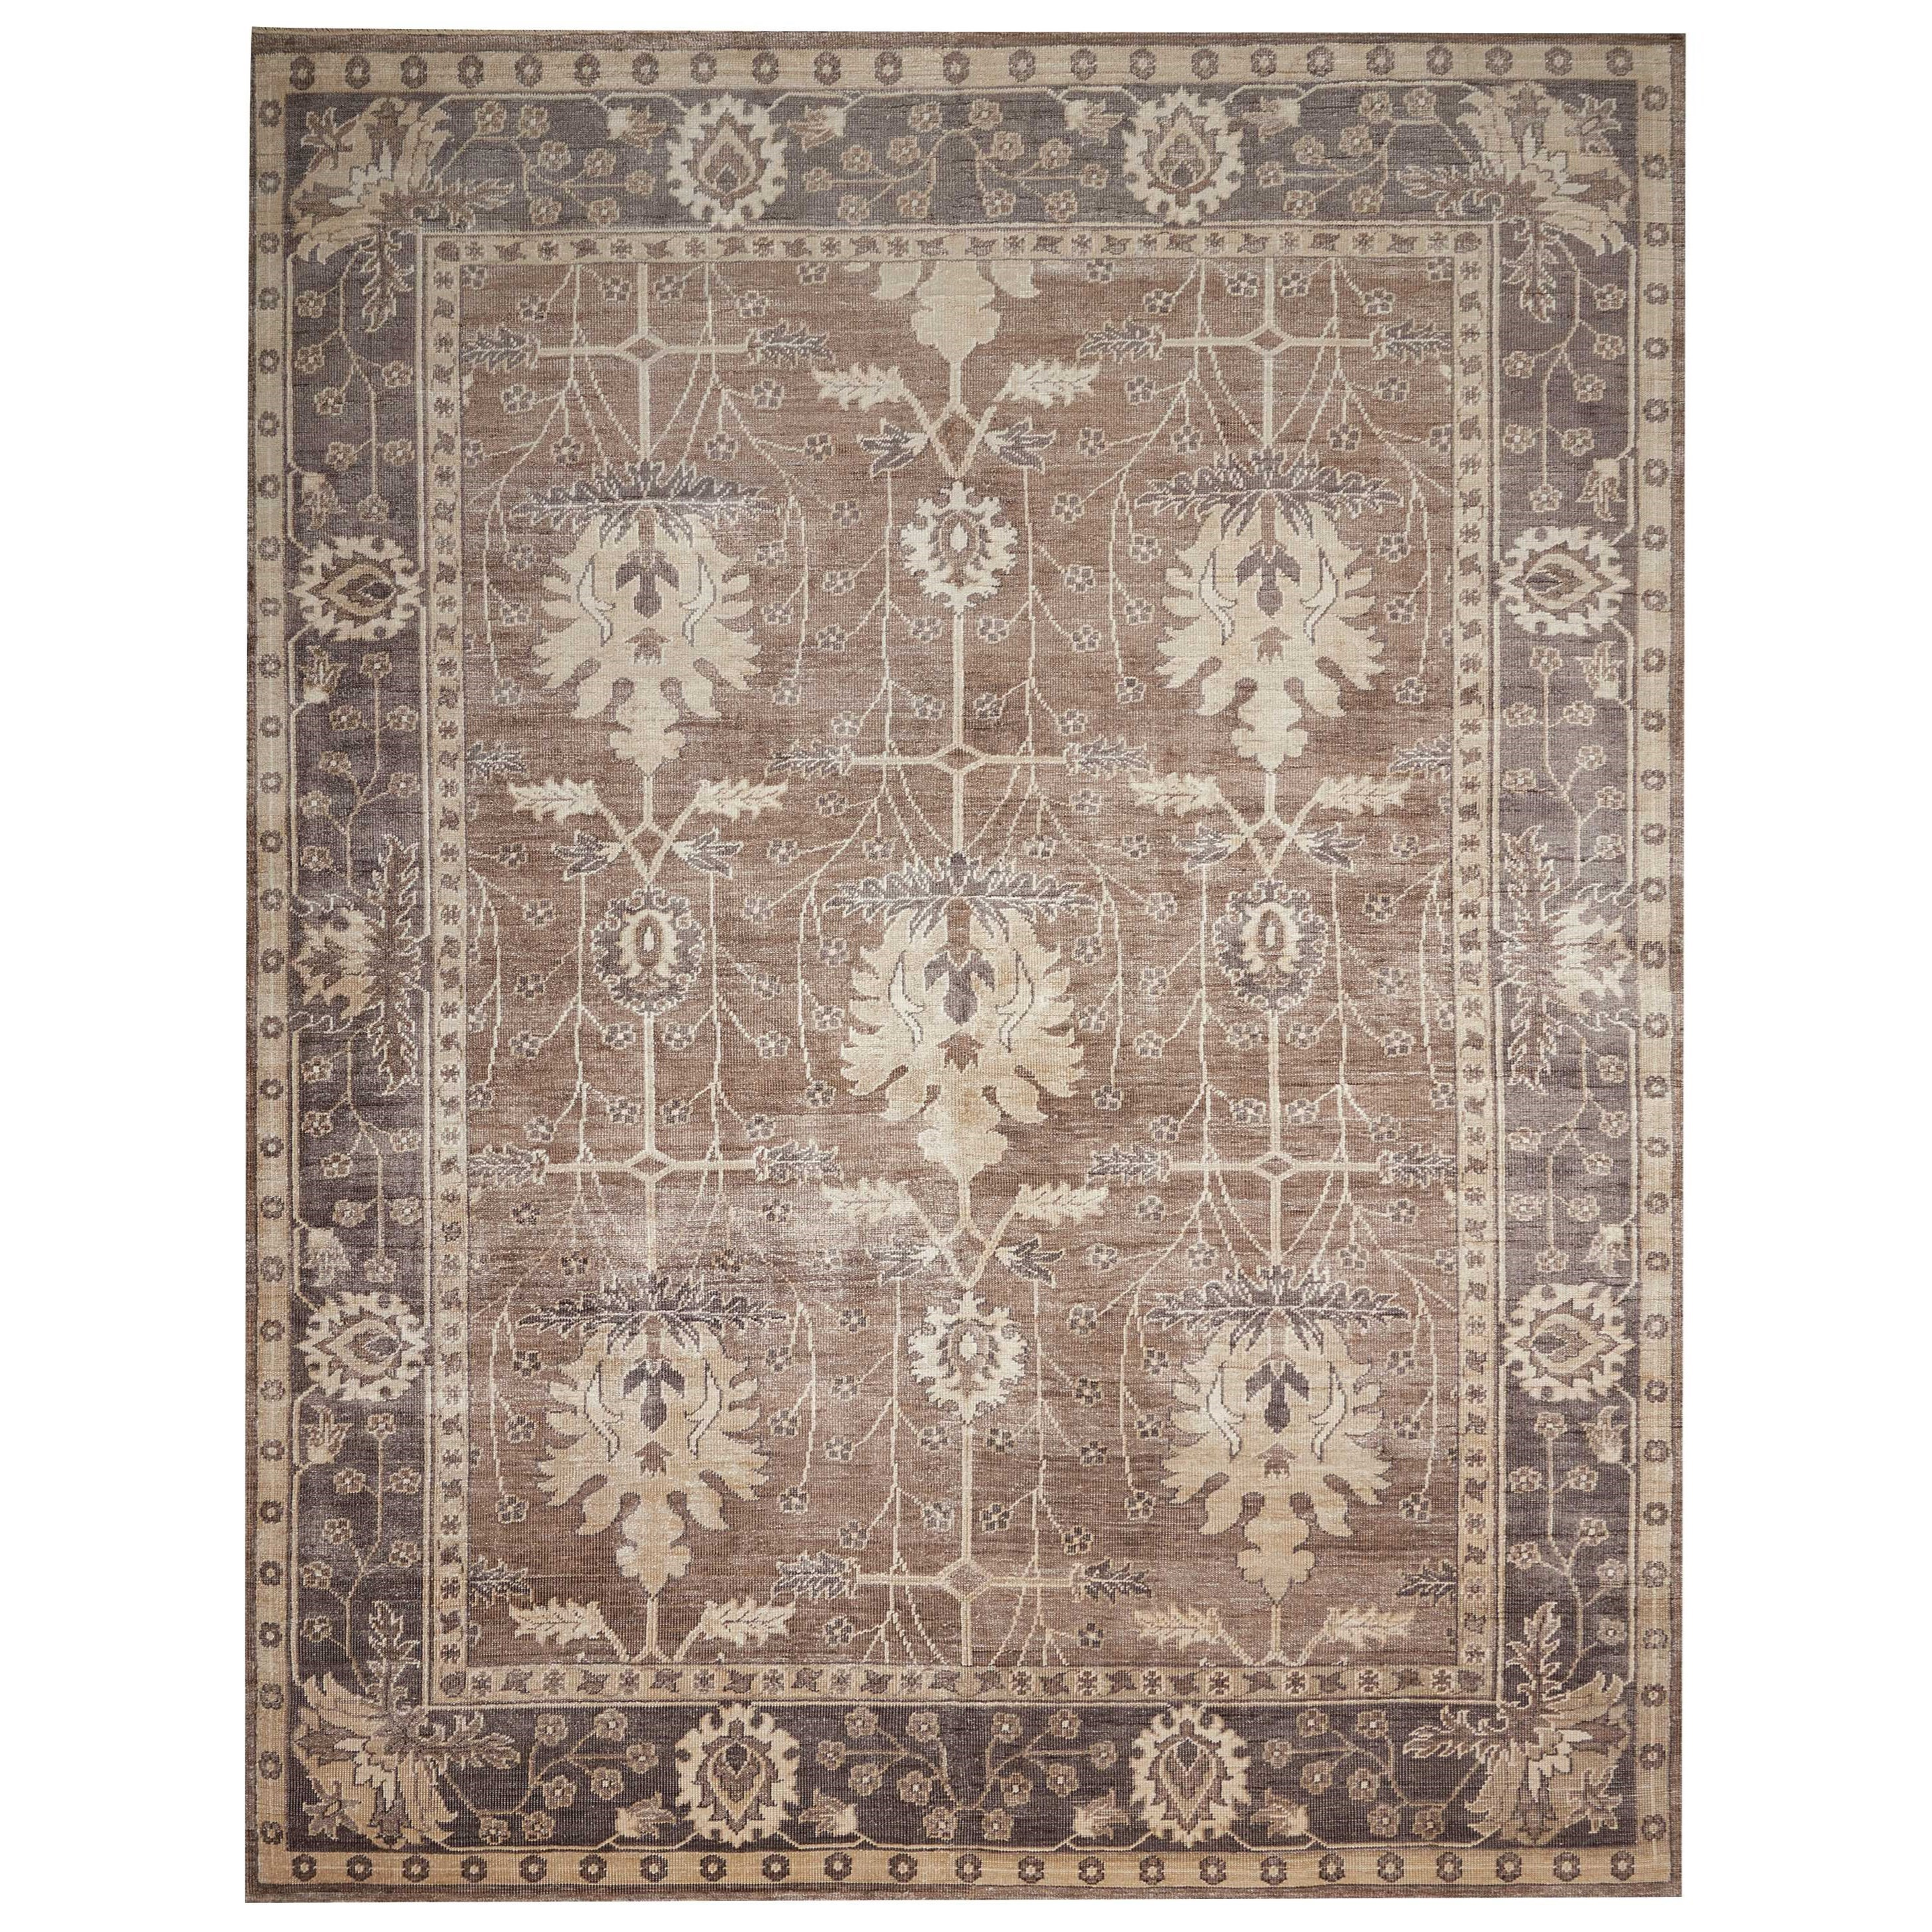 "Aldora1 2'3"" X 3' Opal/Grey Rug by Nourison at Home Collections Furniture"